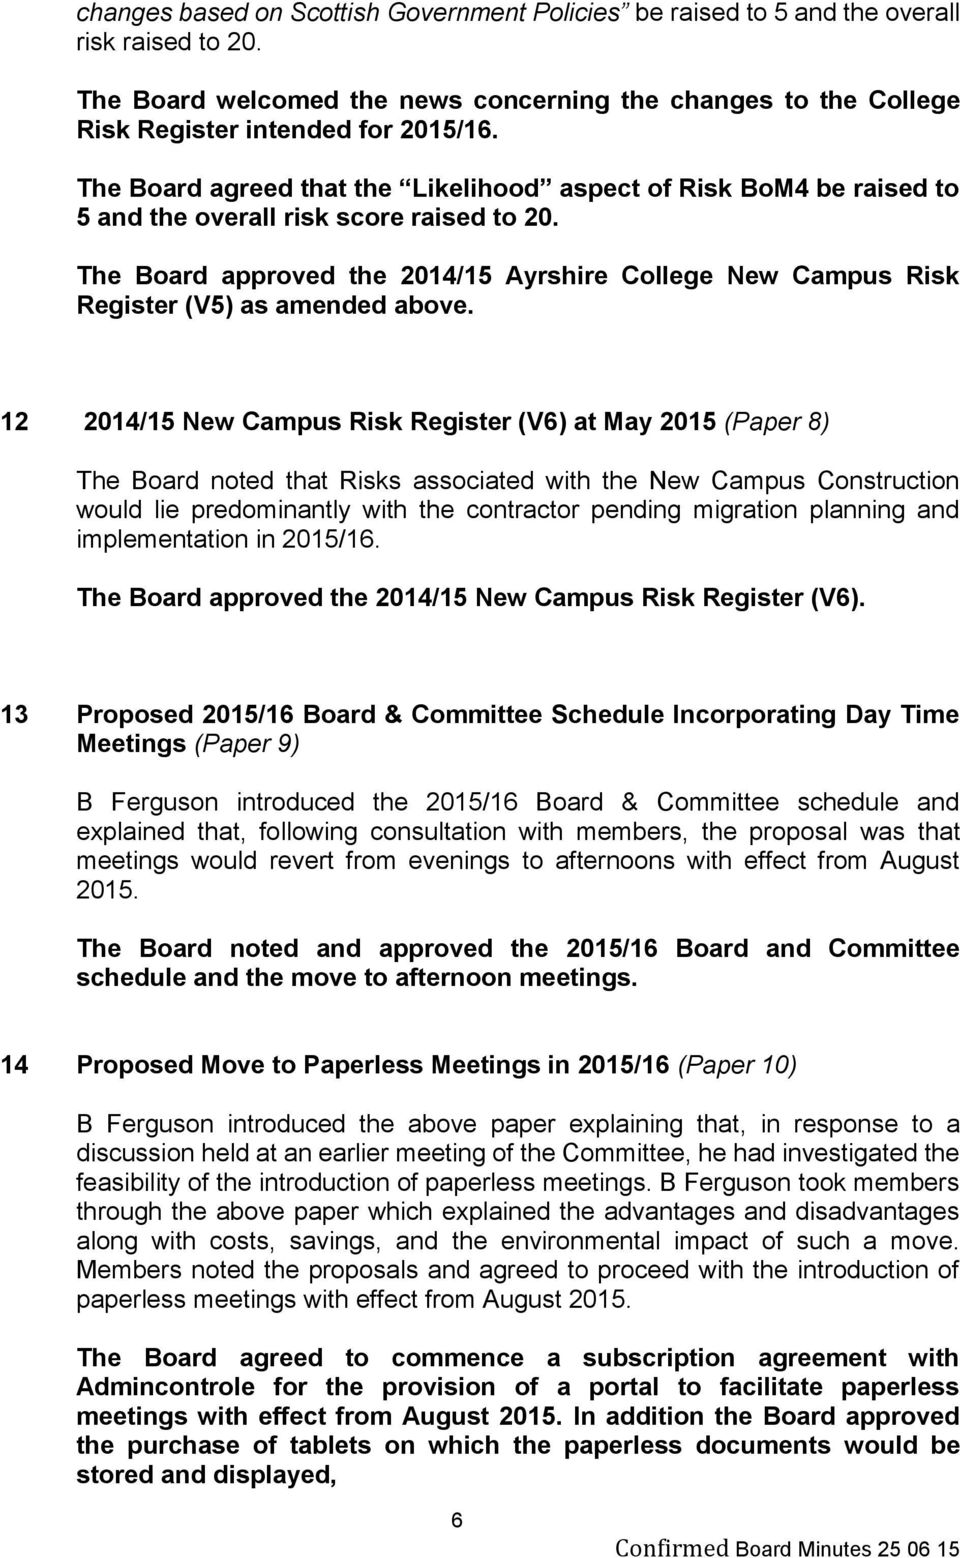 The Board approved the 2014/15 Ayrshire College New Campus Risk Register (V5) as amended above.